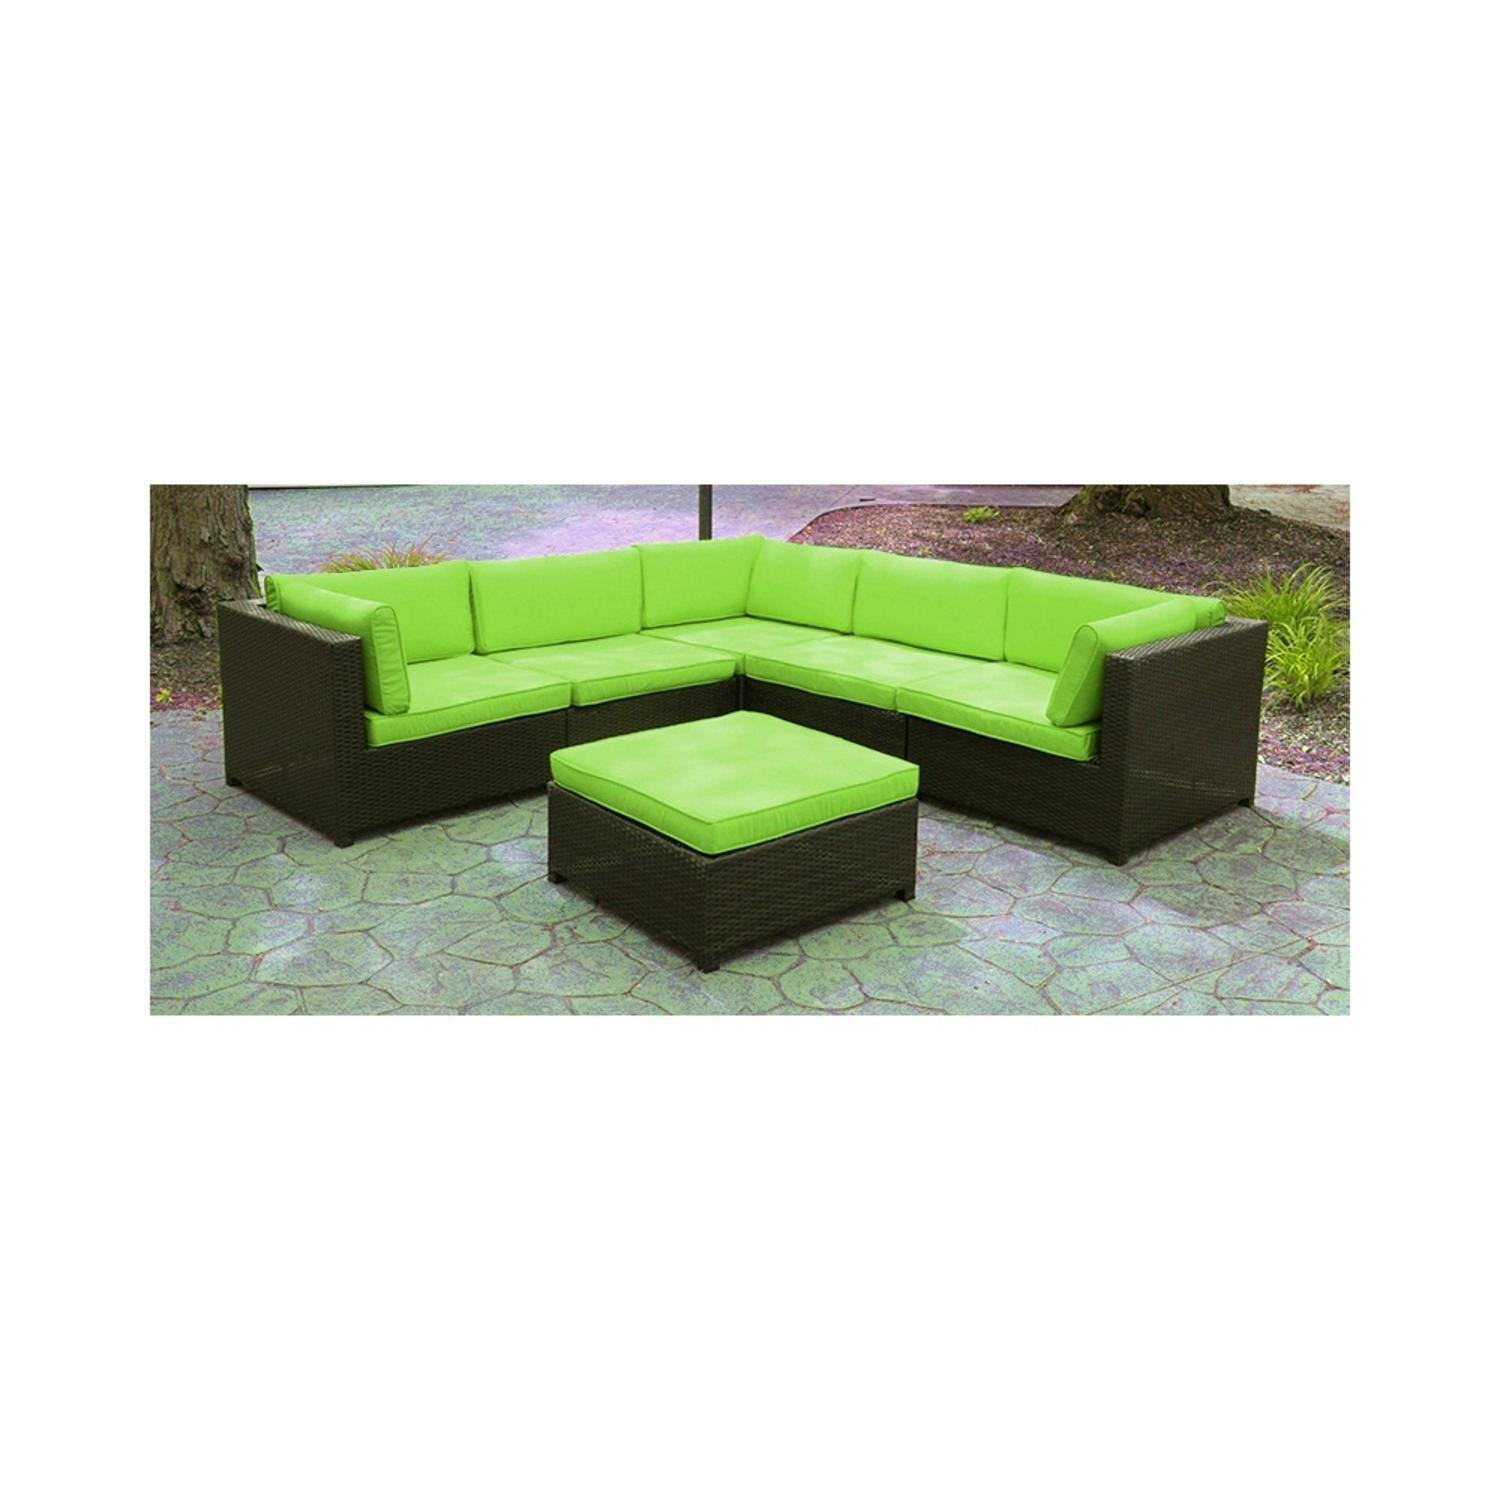 Amazon com black resin wicker outdoor furniture sectional sofa set lime green cushions garden outdoor